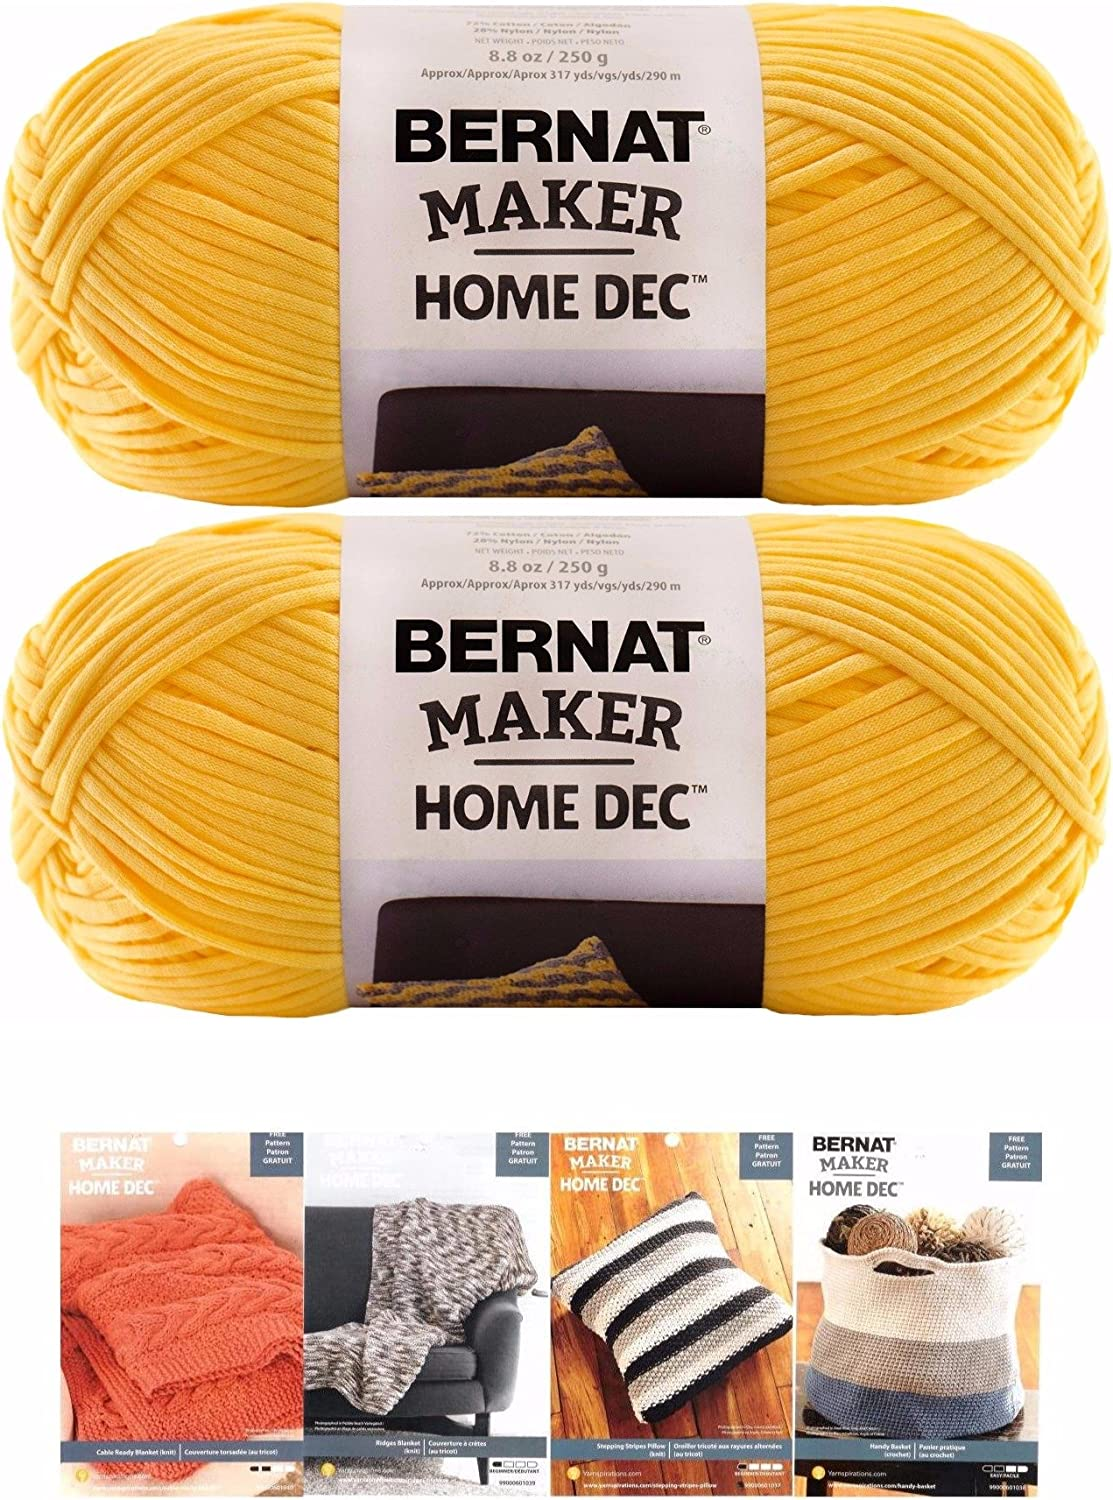 Bernat Maker Home Dec Corded Yarn Bundle 2 Skeins with 4 Patterns 8.8 Ounce Each Skein (Gold)